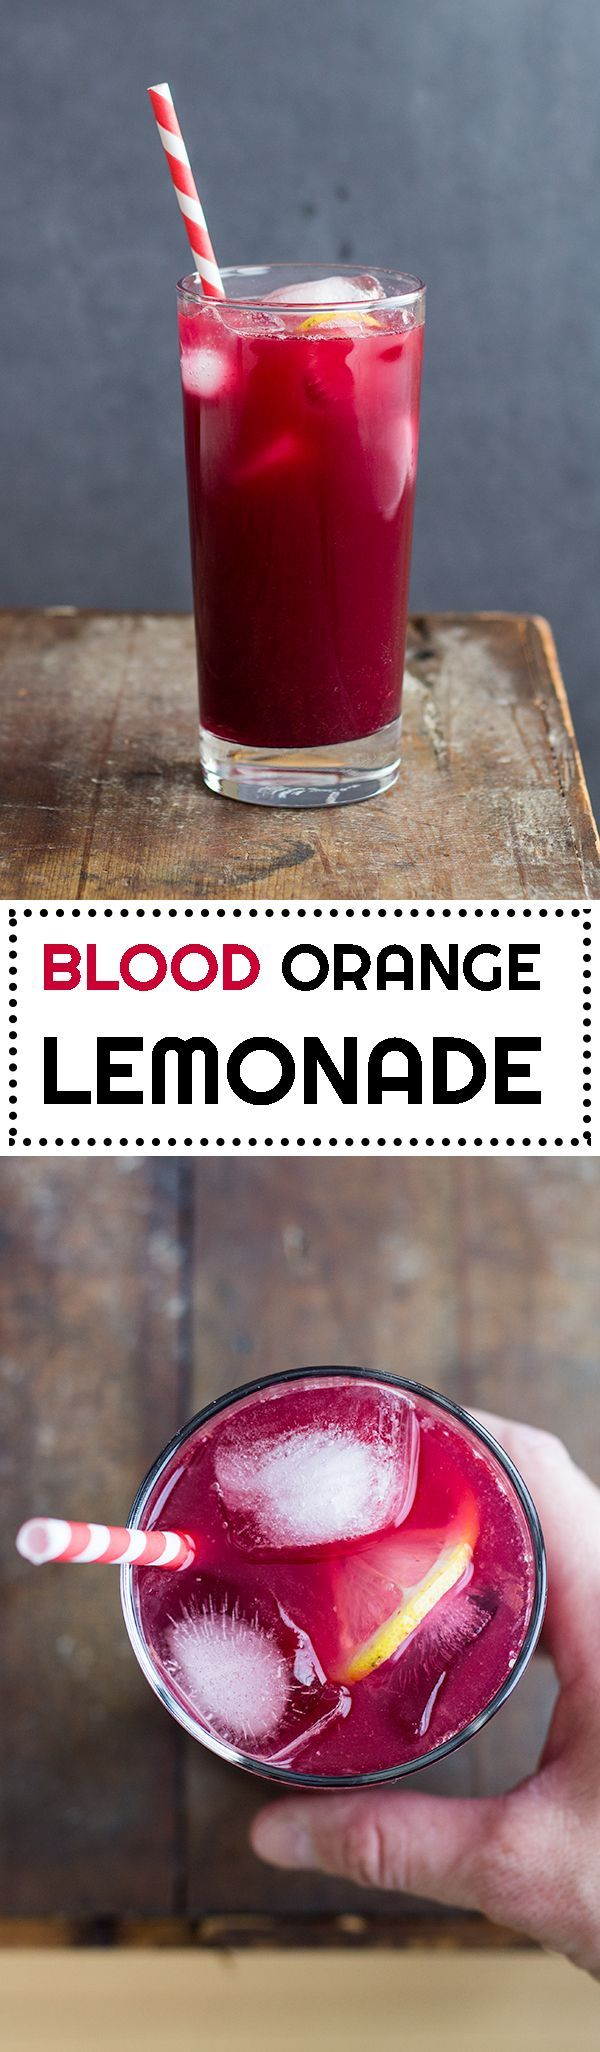 Enjoy an extra fancy healthy drink with one of the most amazing power fruits: Blood Orange Lemonade! Blood oranges are in season Dec-May only so hurry!